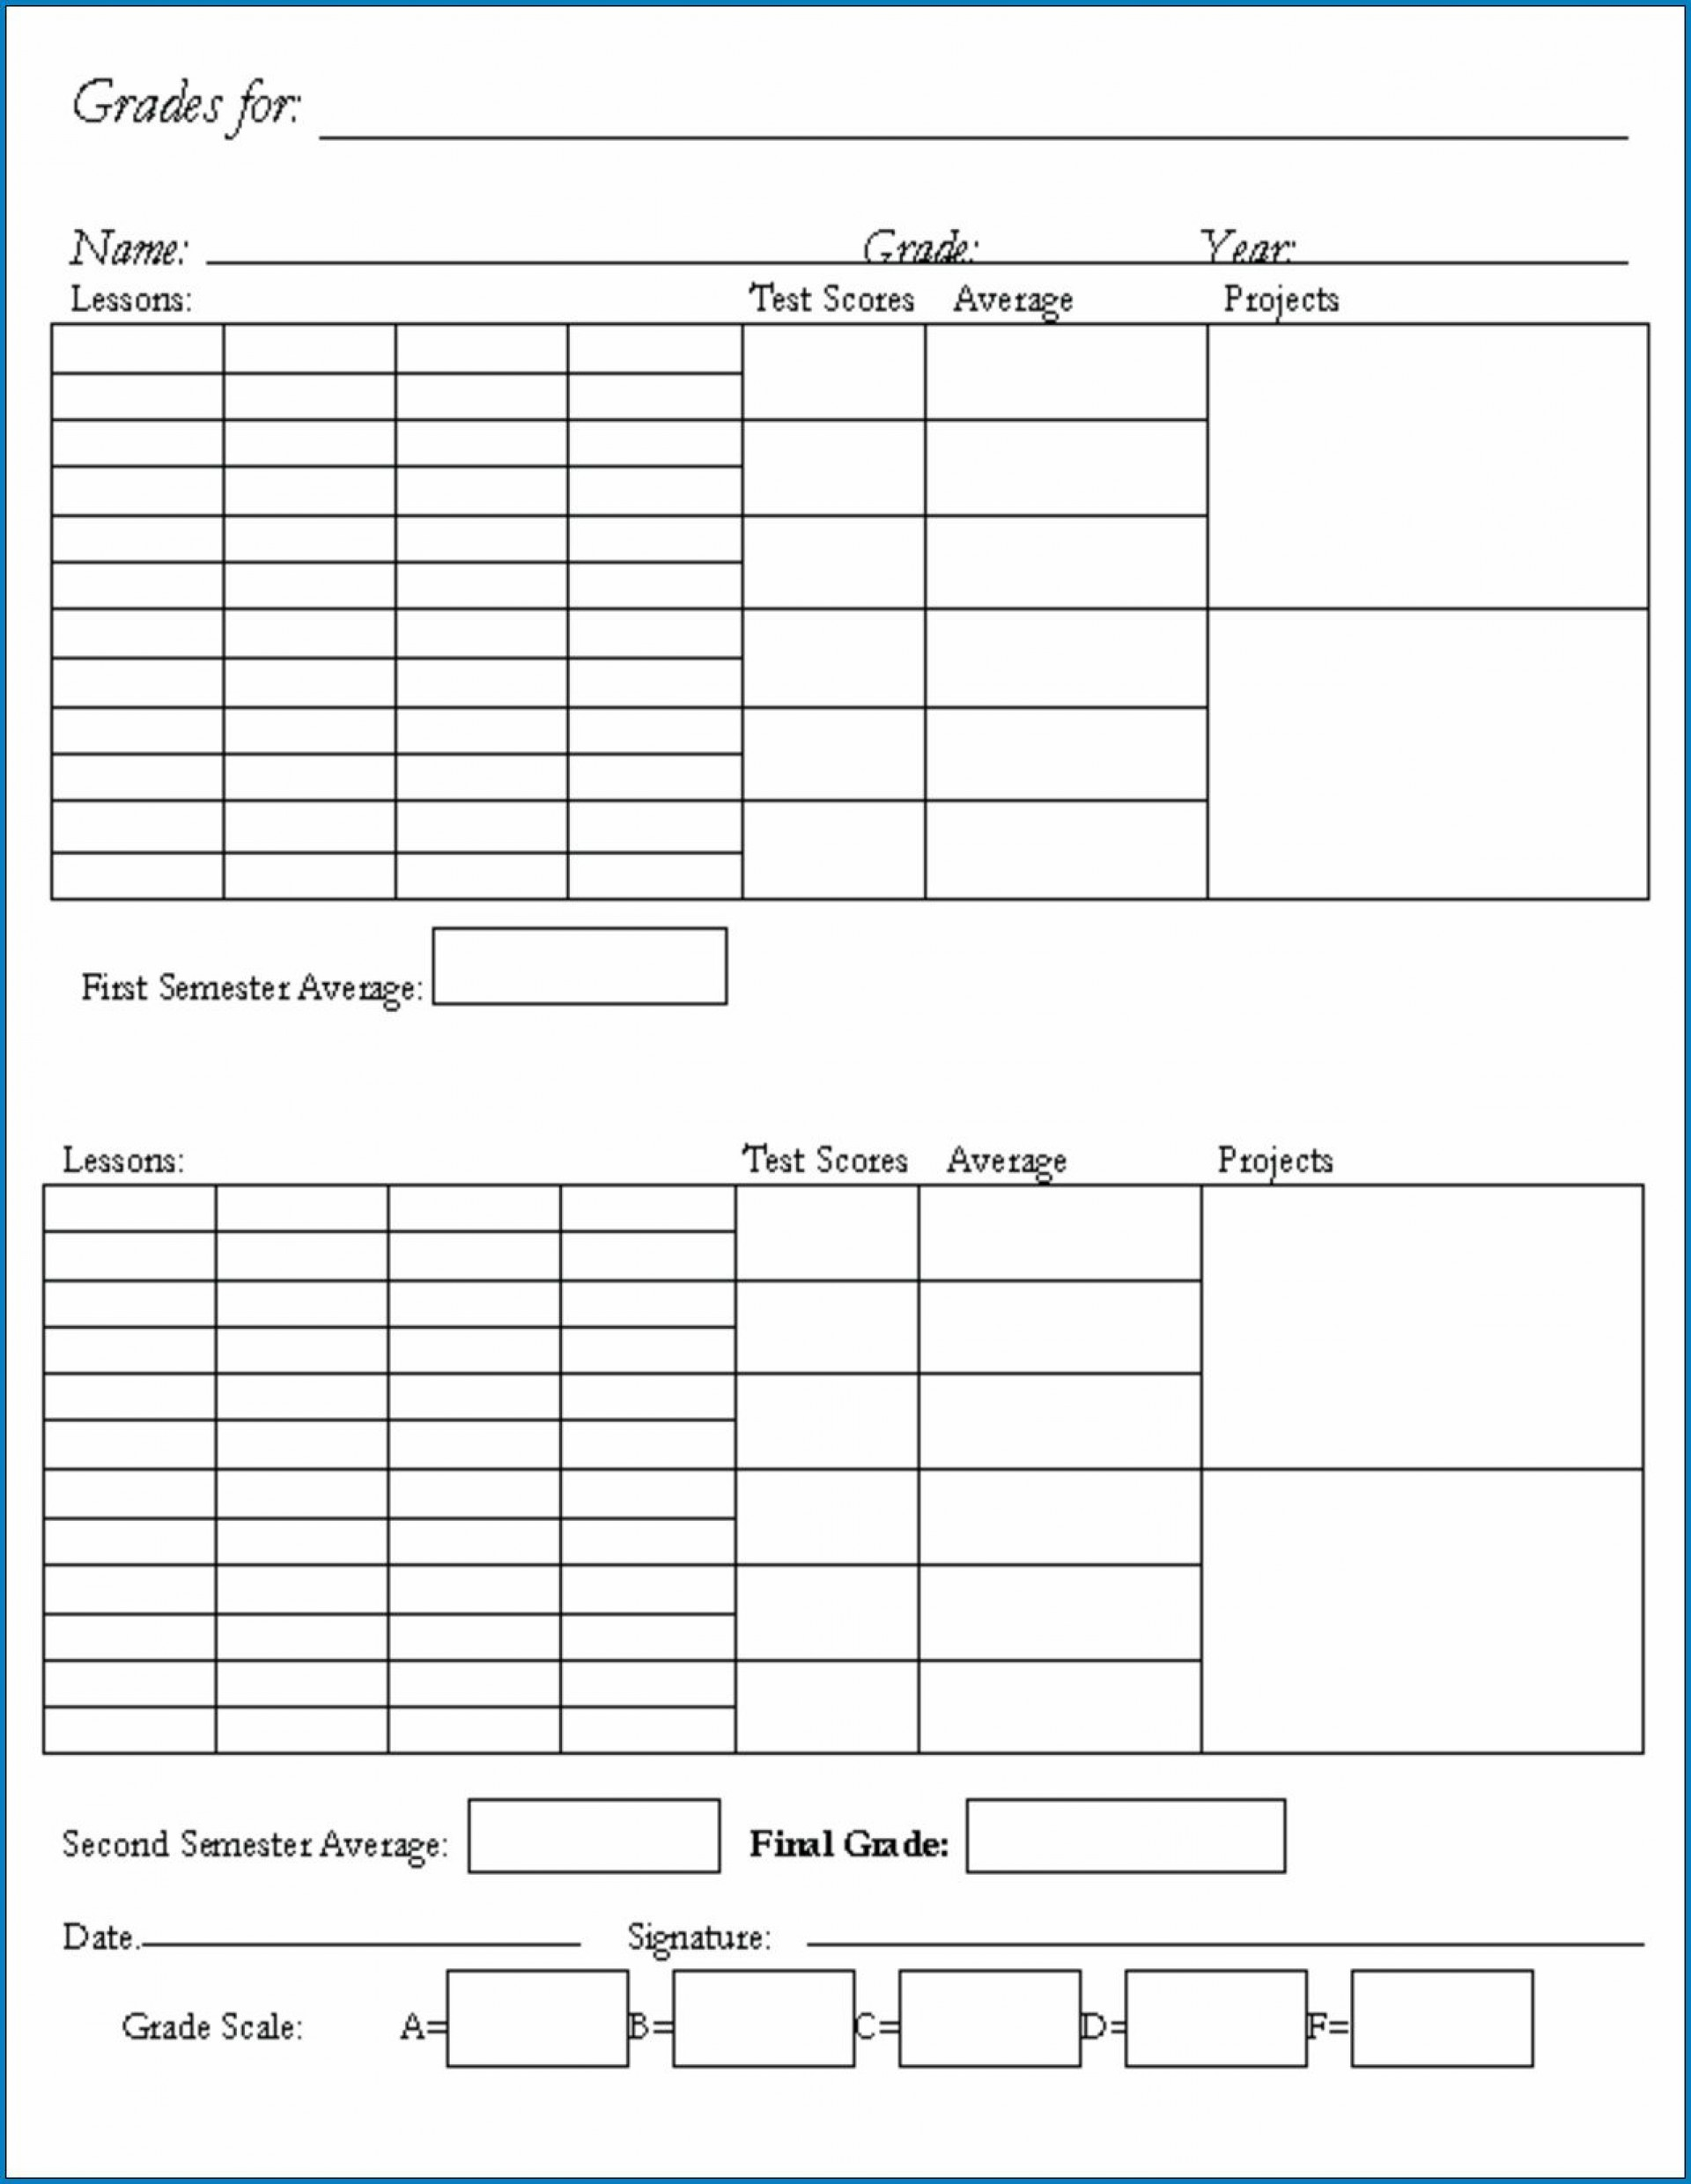 008 Wondrou Middle School Report Card Template Free Highest Quality 1920